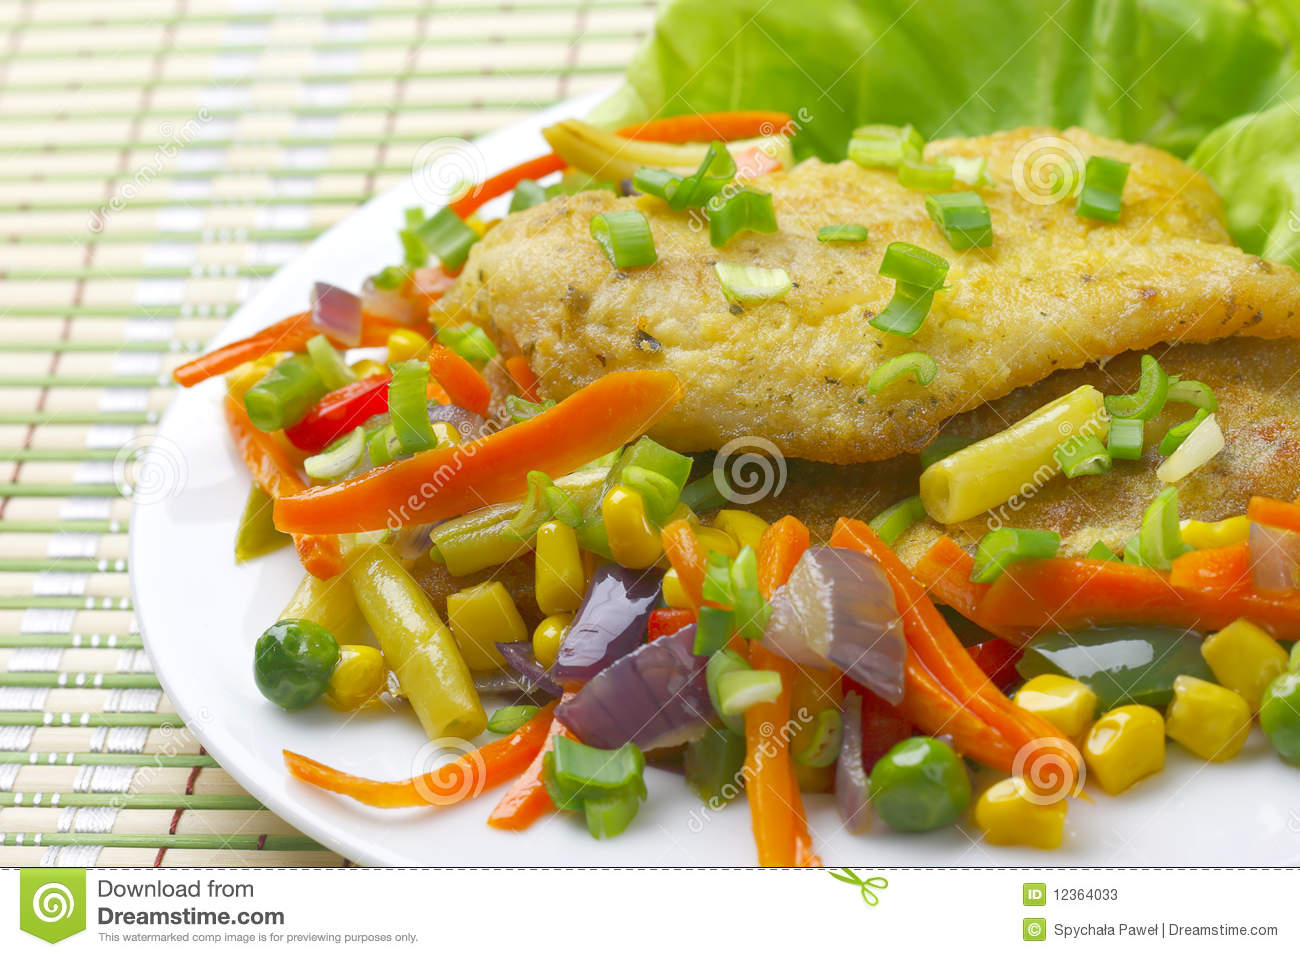 Fish fillet with vegetables stock photos image 12364033 for Fish with vegetables